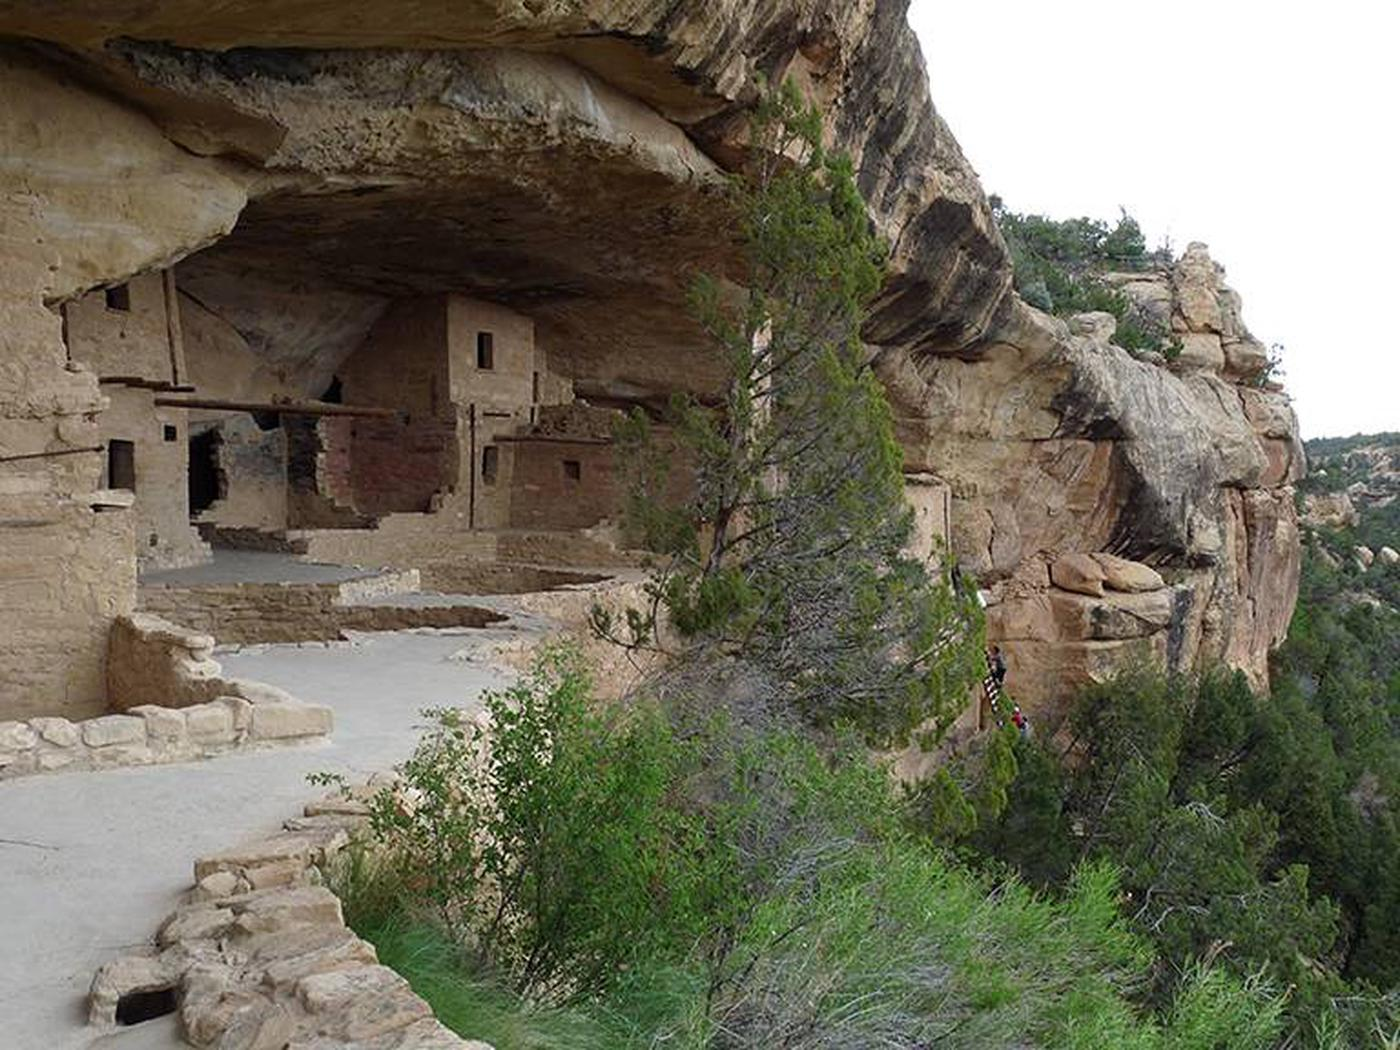 An ancient stone masonry village with visitors climbing the entrance ladder in the distanceVisitors entering Balcony House on a ranger-guided tour.